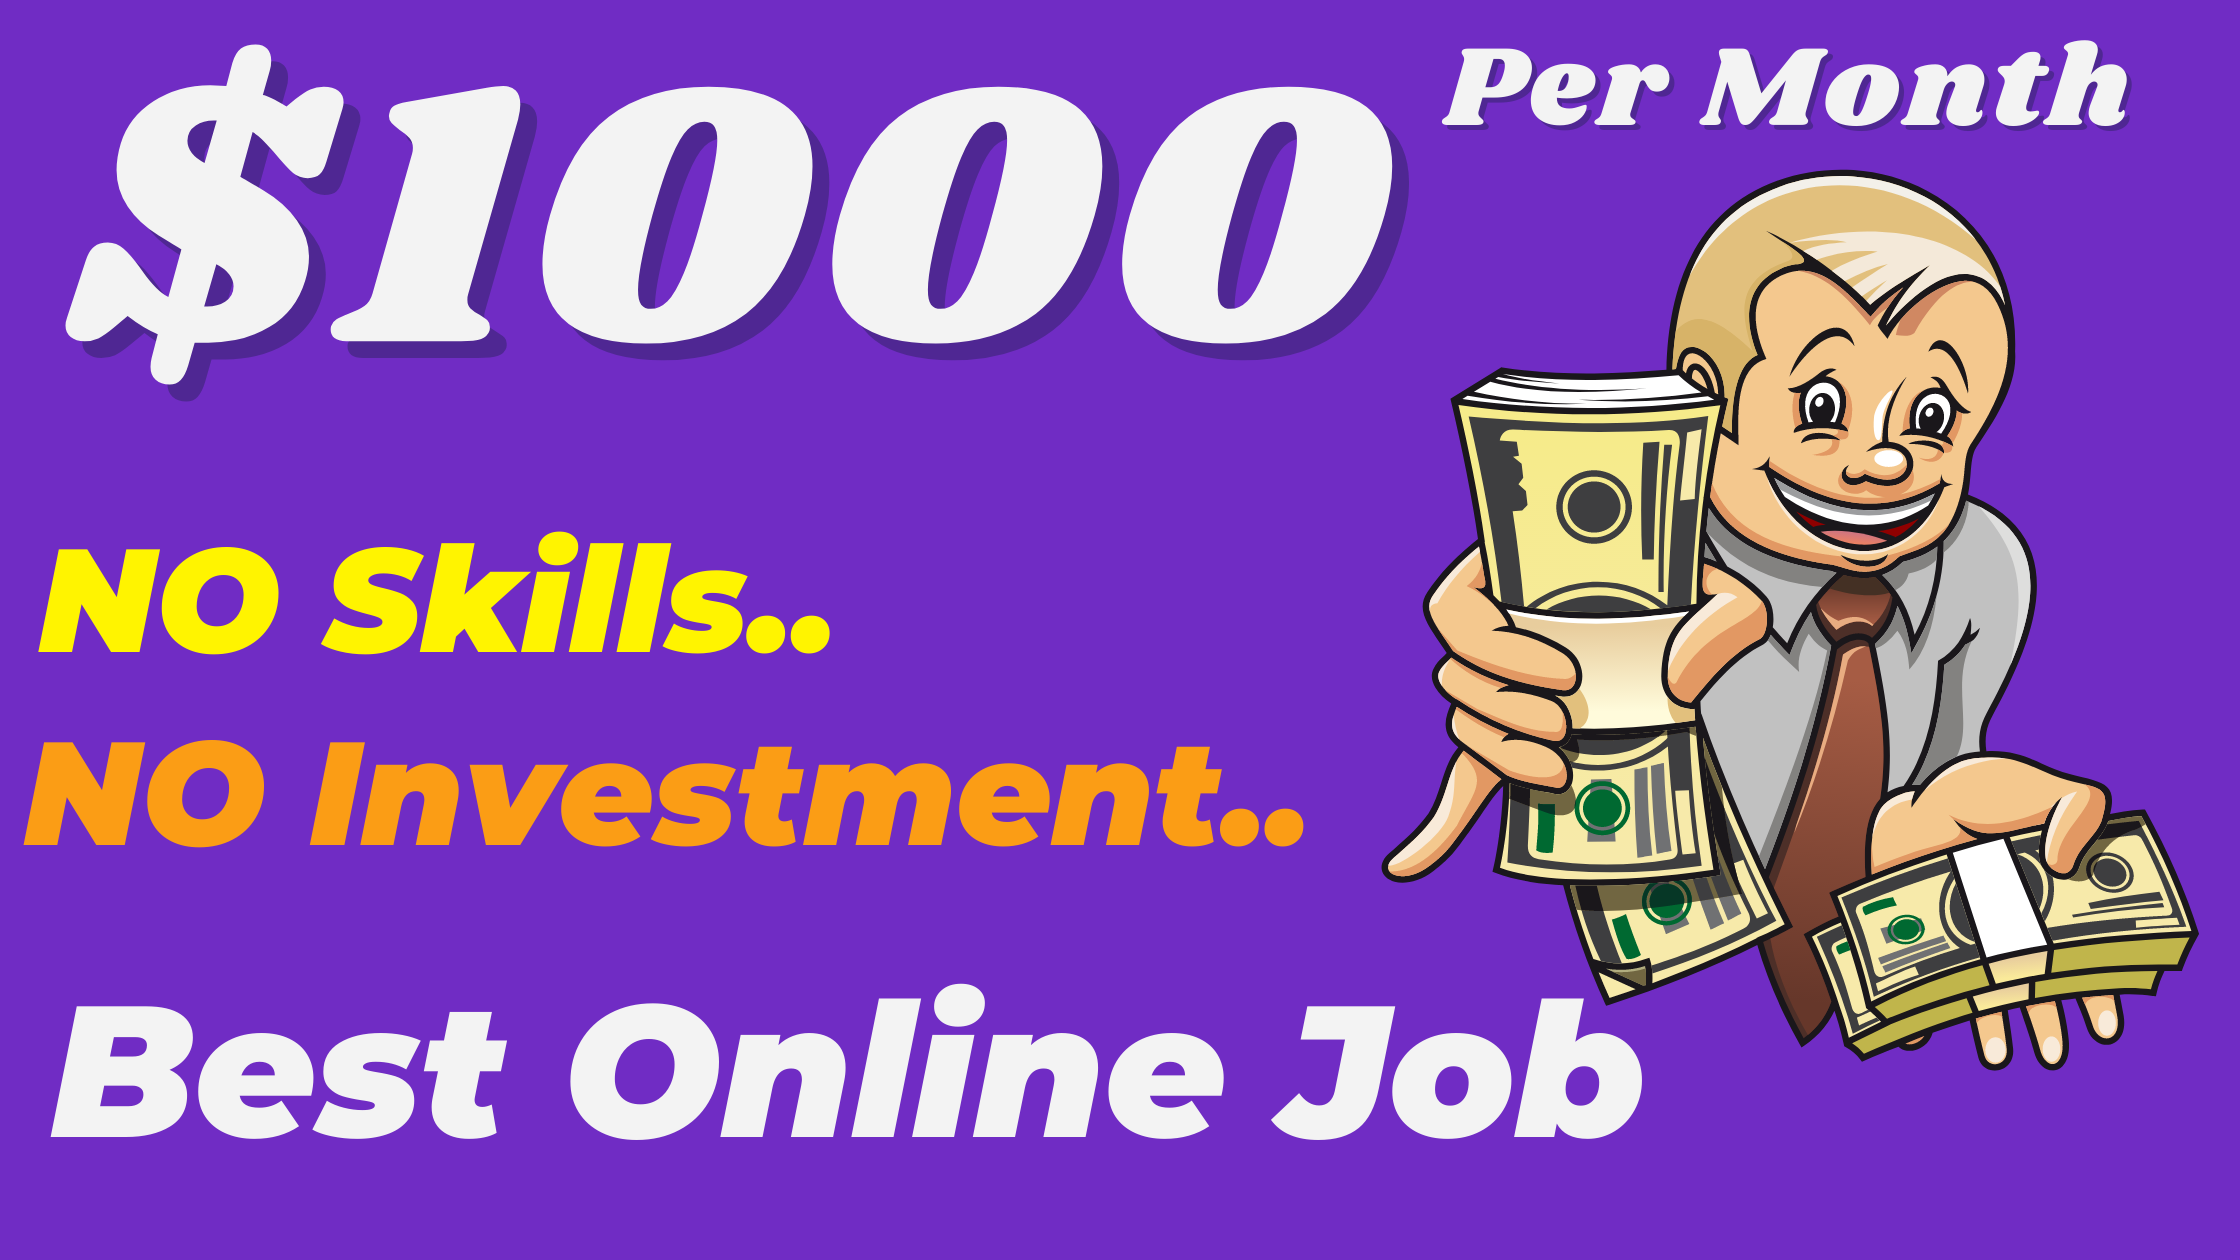 13 Best Online Part Time Jobs & Home Jobs To Earn A Minimum Of $1000 Per Month.